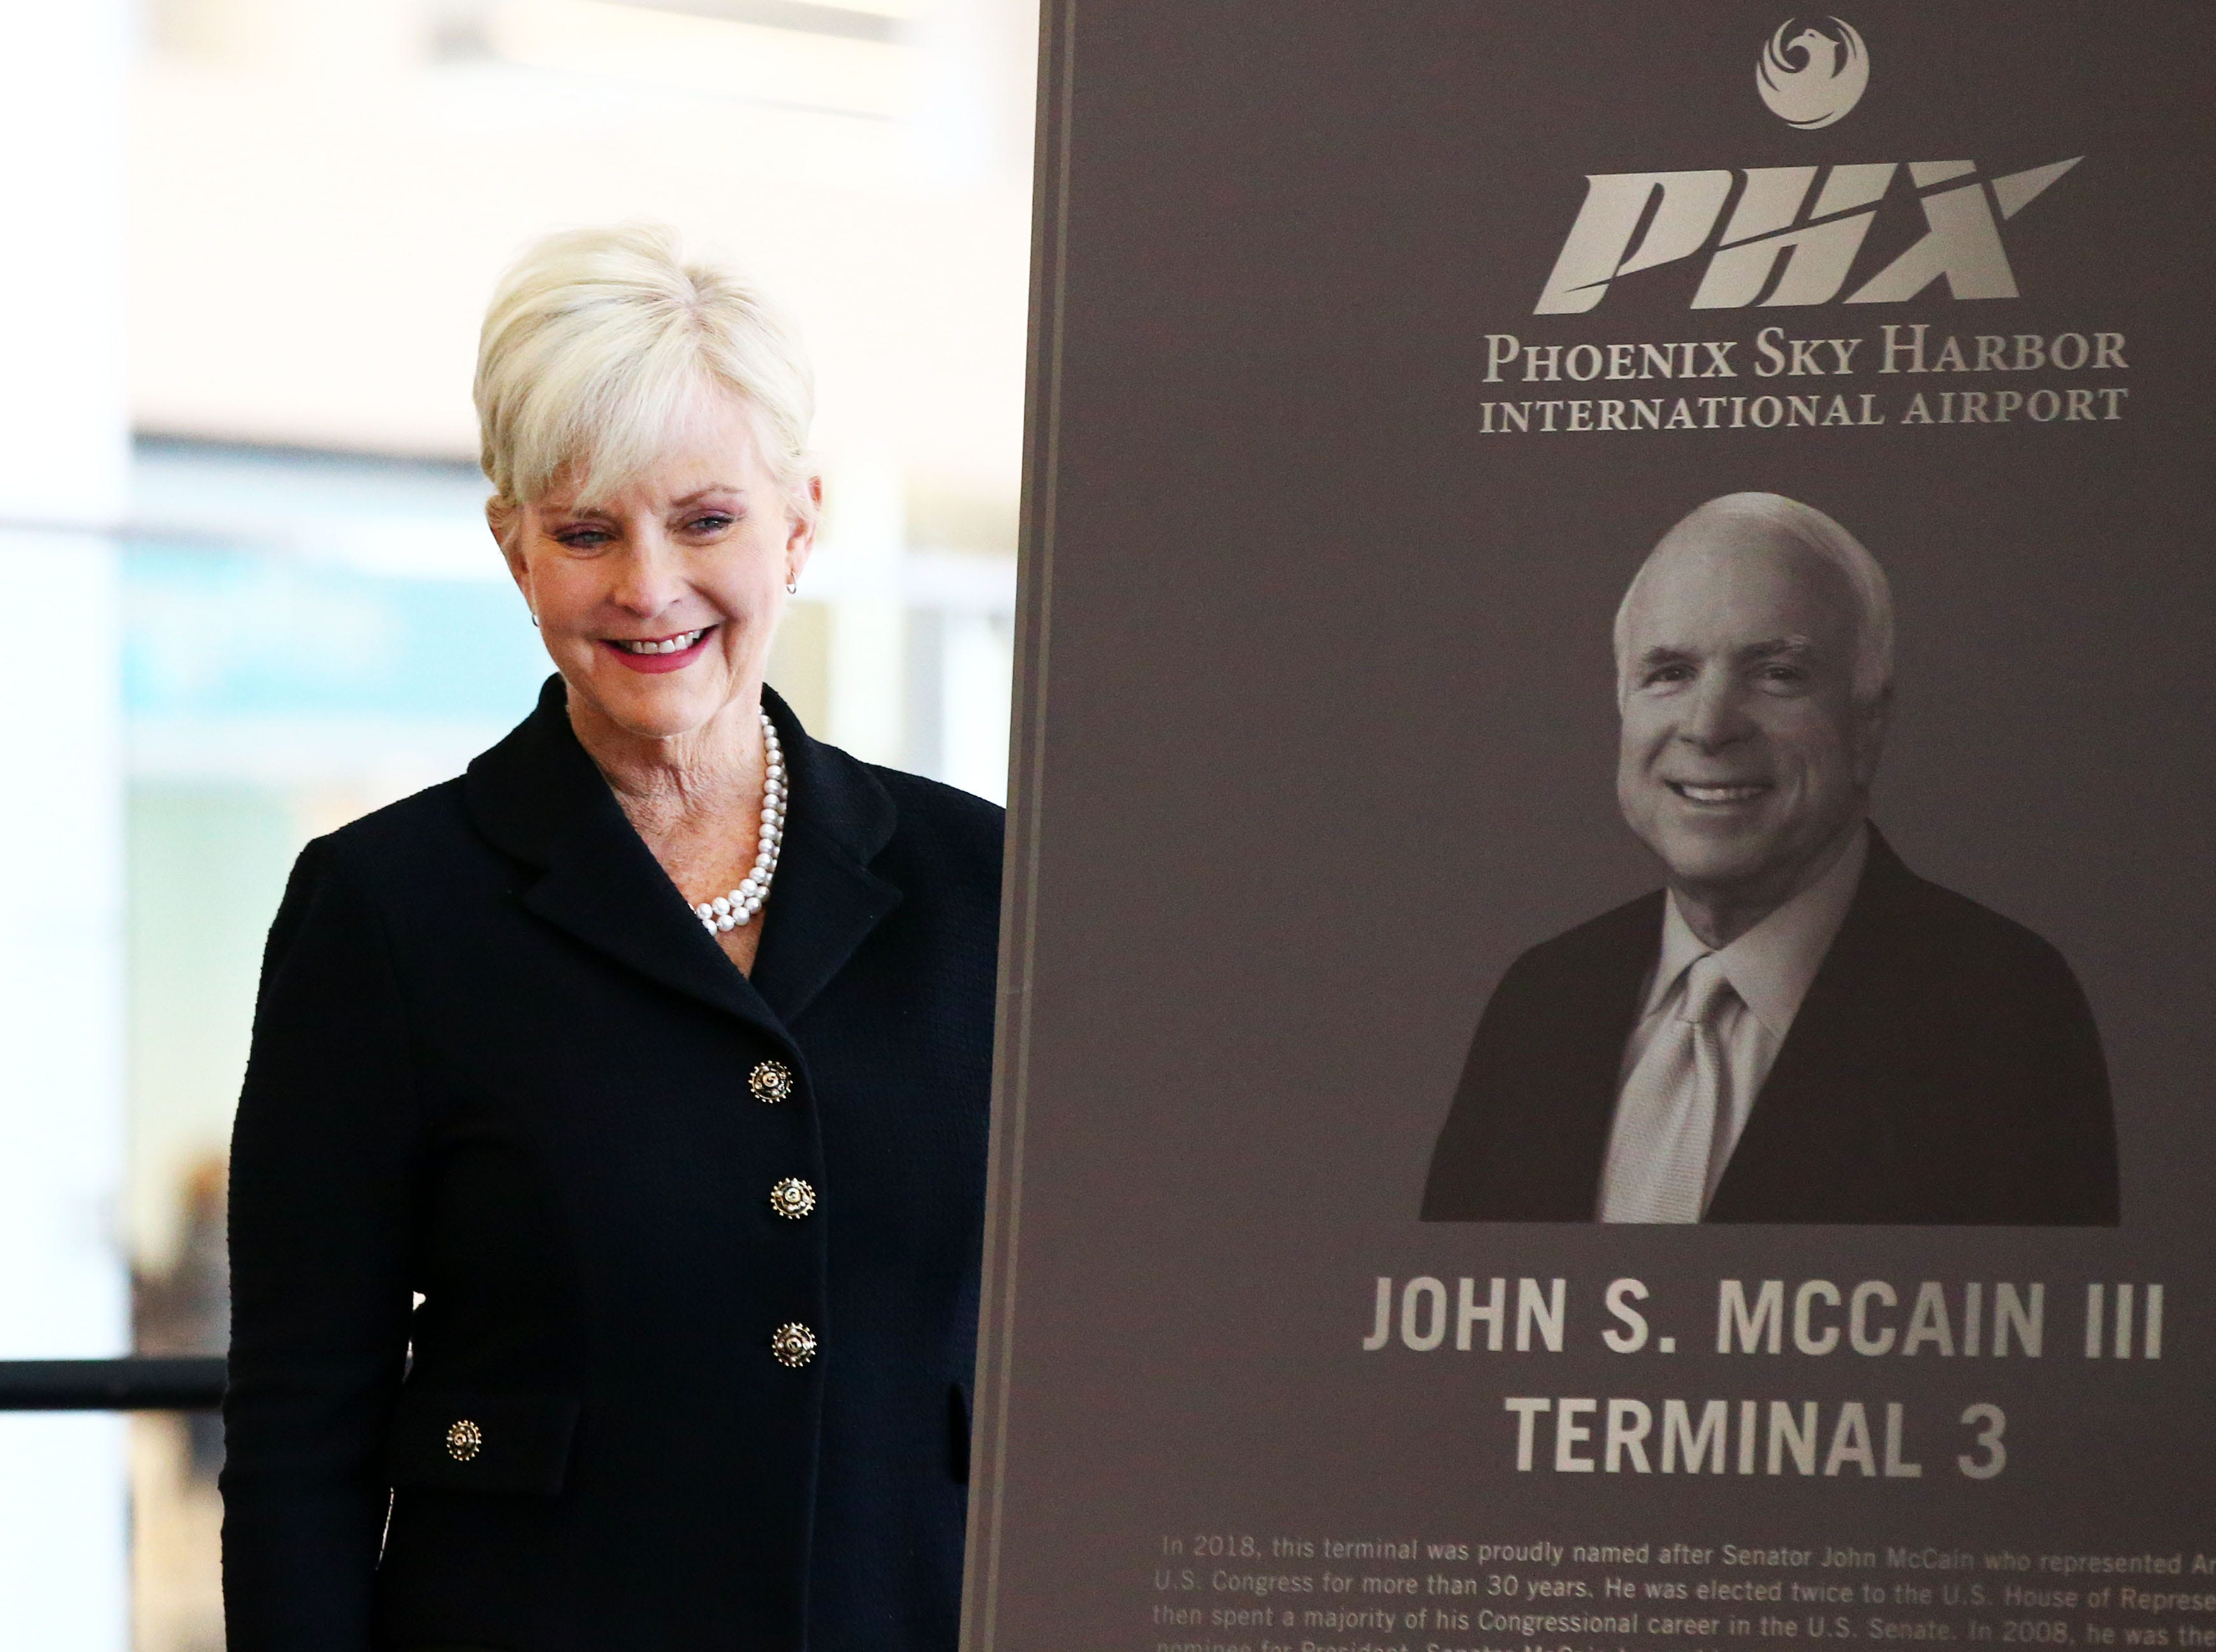 Cindy McCain helped open of the John S. McCain III Terminal 3, South Concourse on Monday, Jan. 7, 2019 at Phoenix Sky Harbor International Airport.